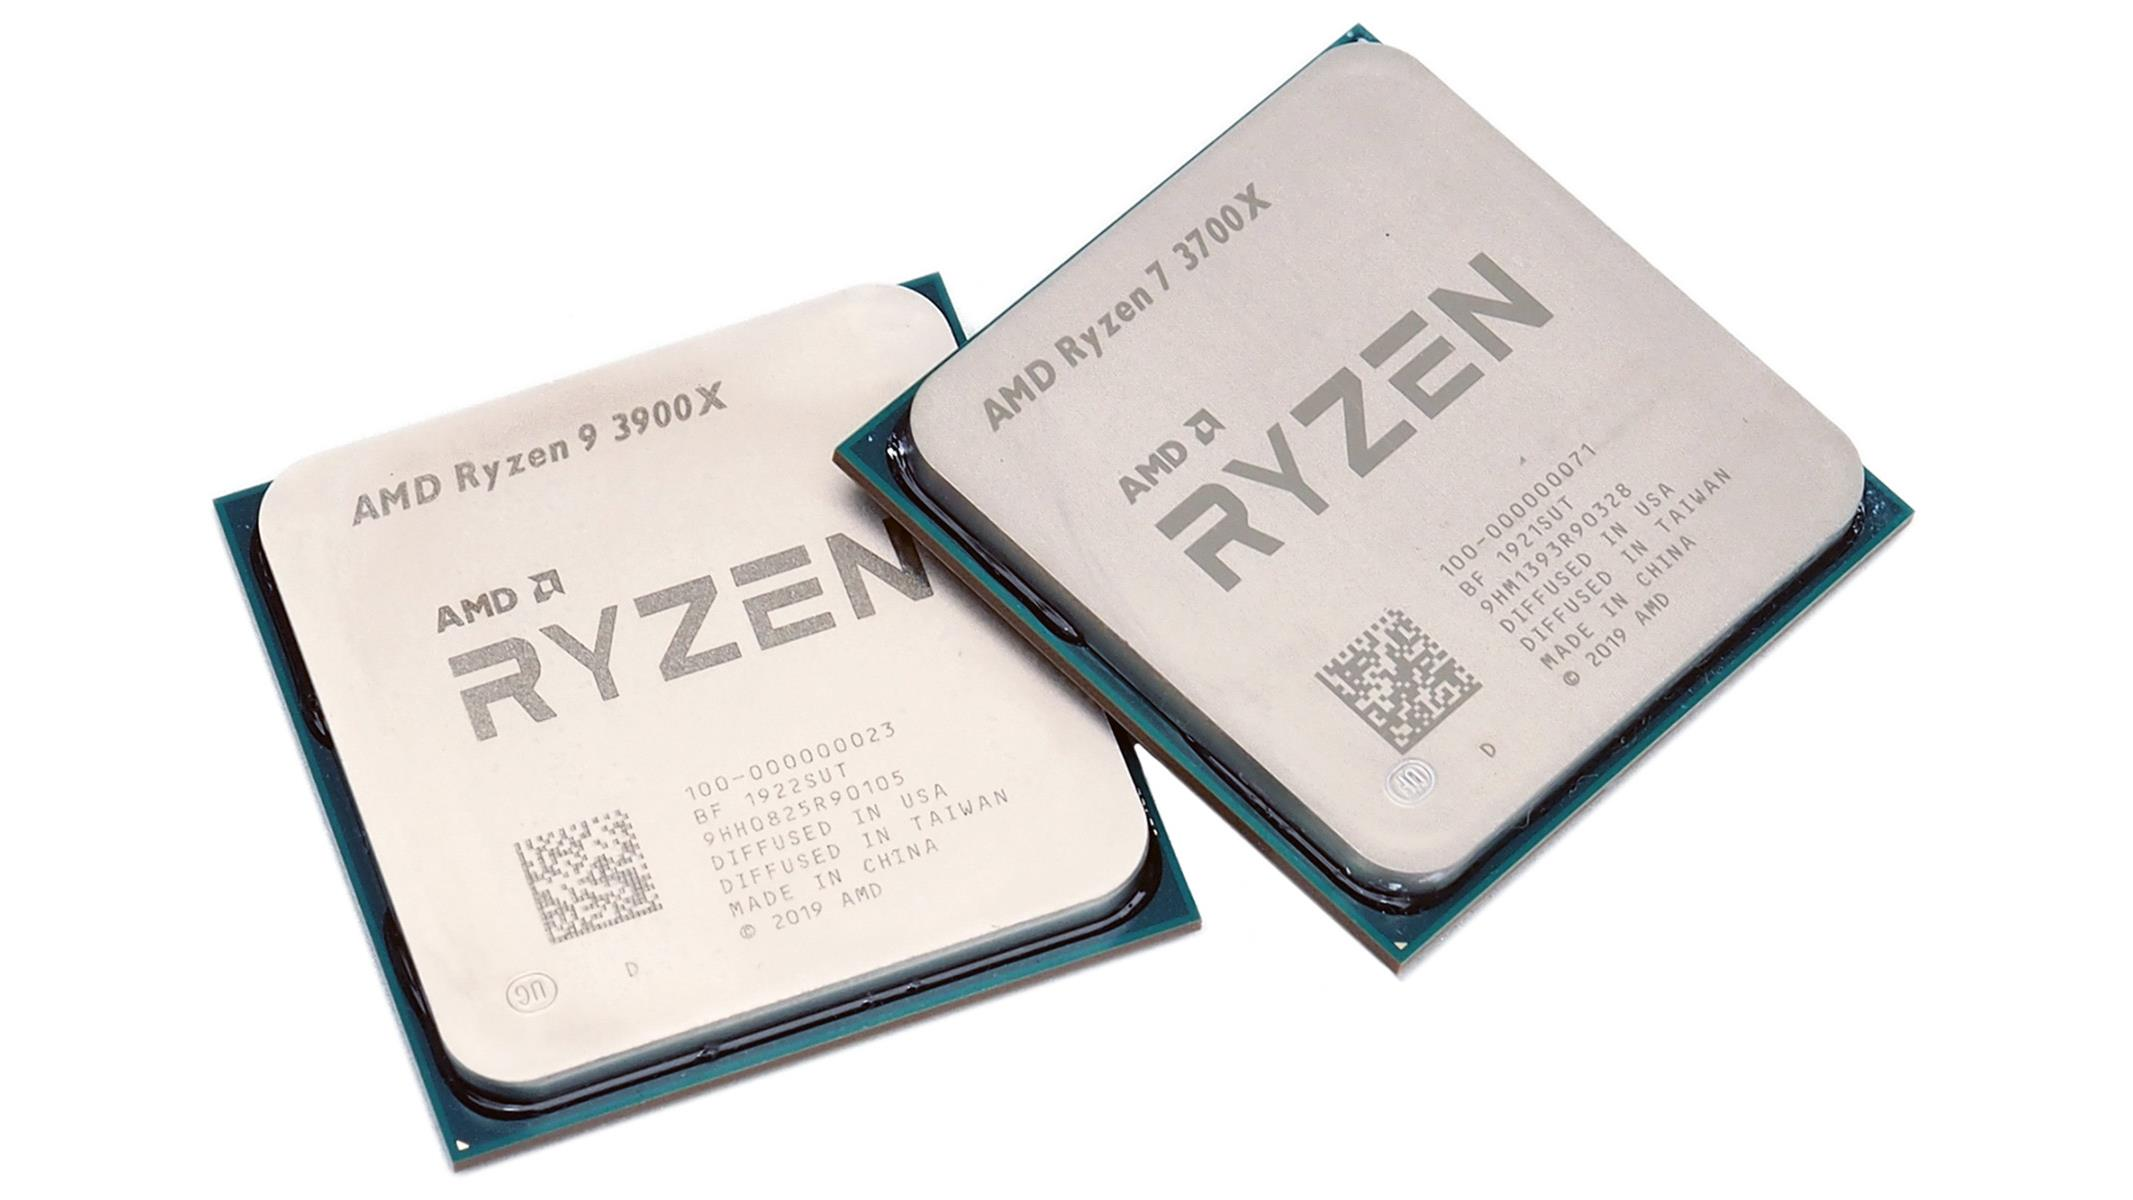 AMD Ryzen 9 3900X And Ryzen 7 3700X Zen 2 Review: Zen 2 Is